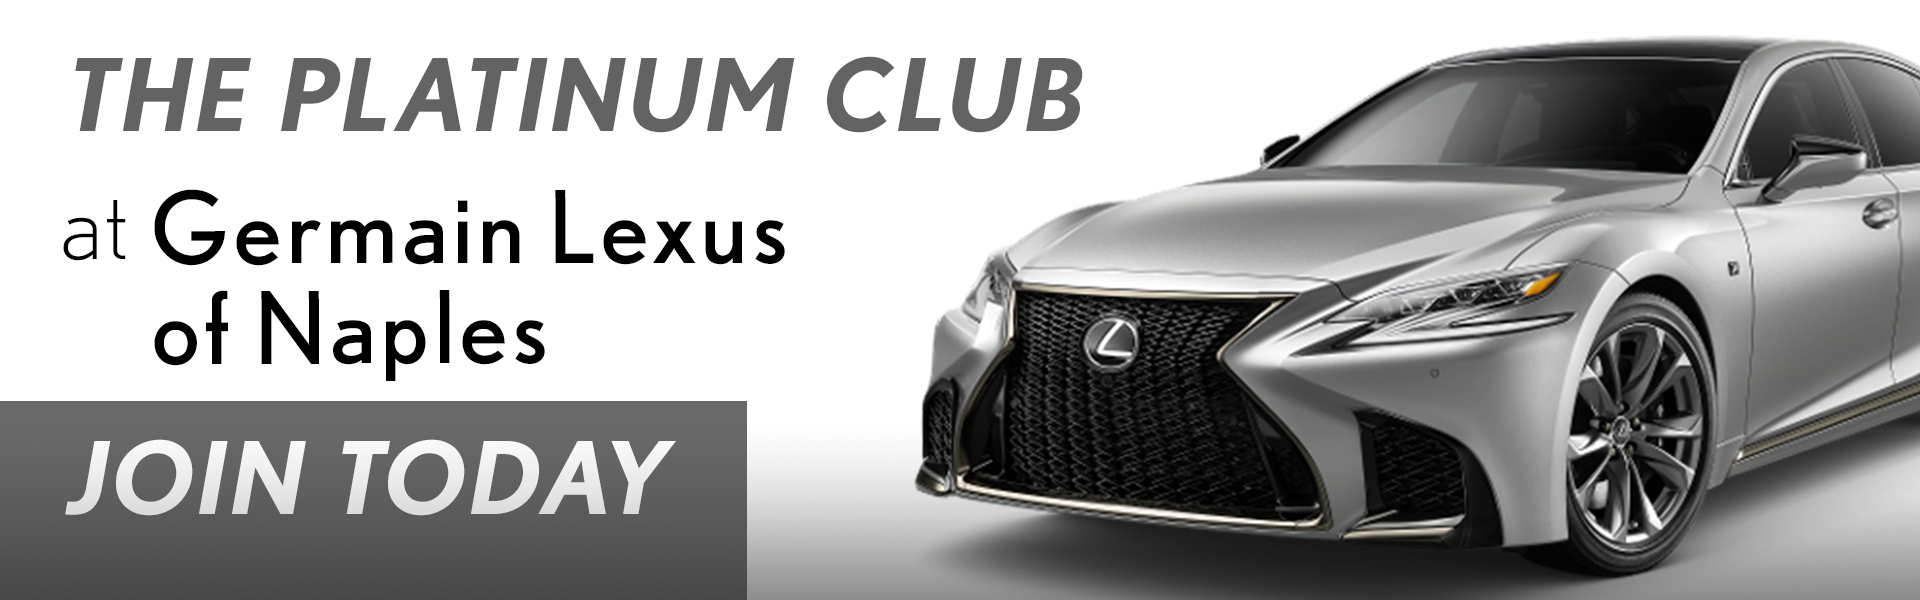 Germain Lexus of Naples Platinum Club